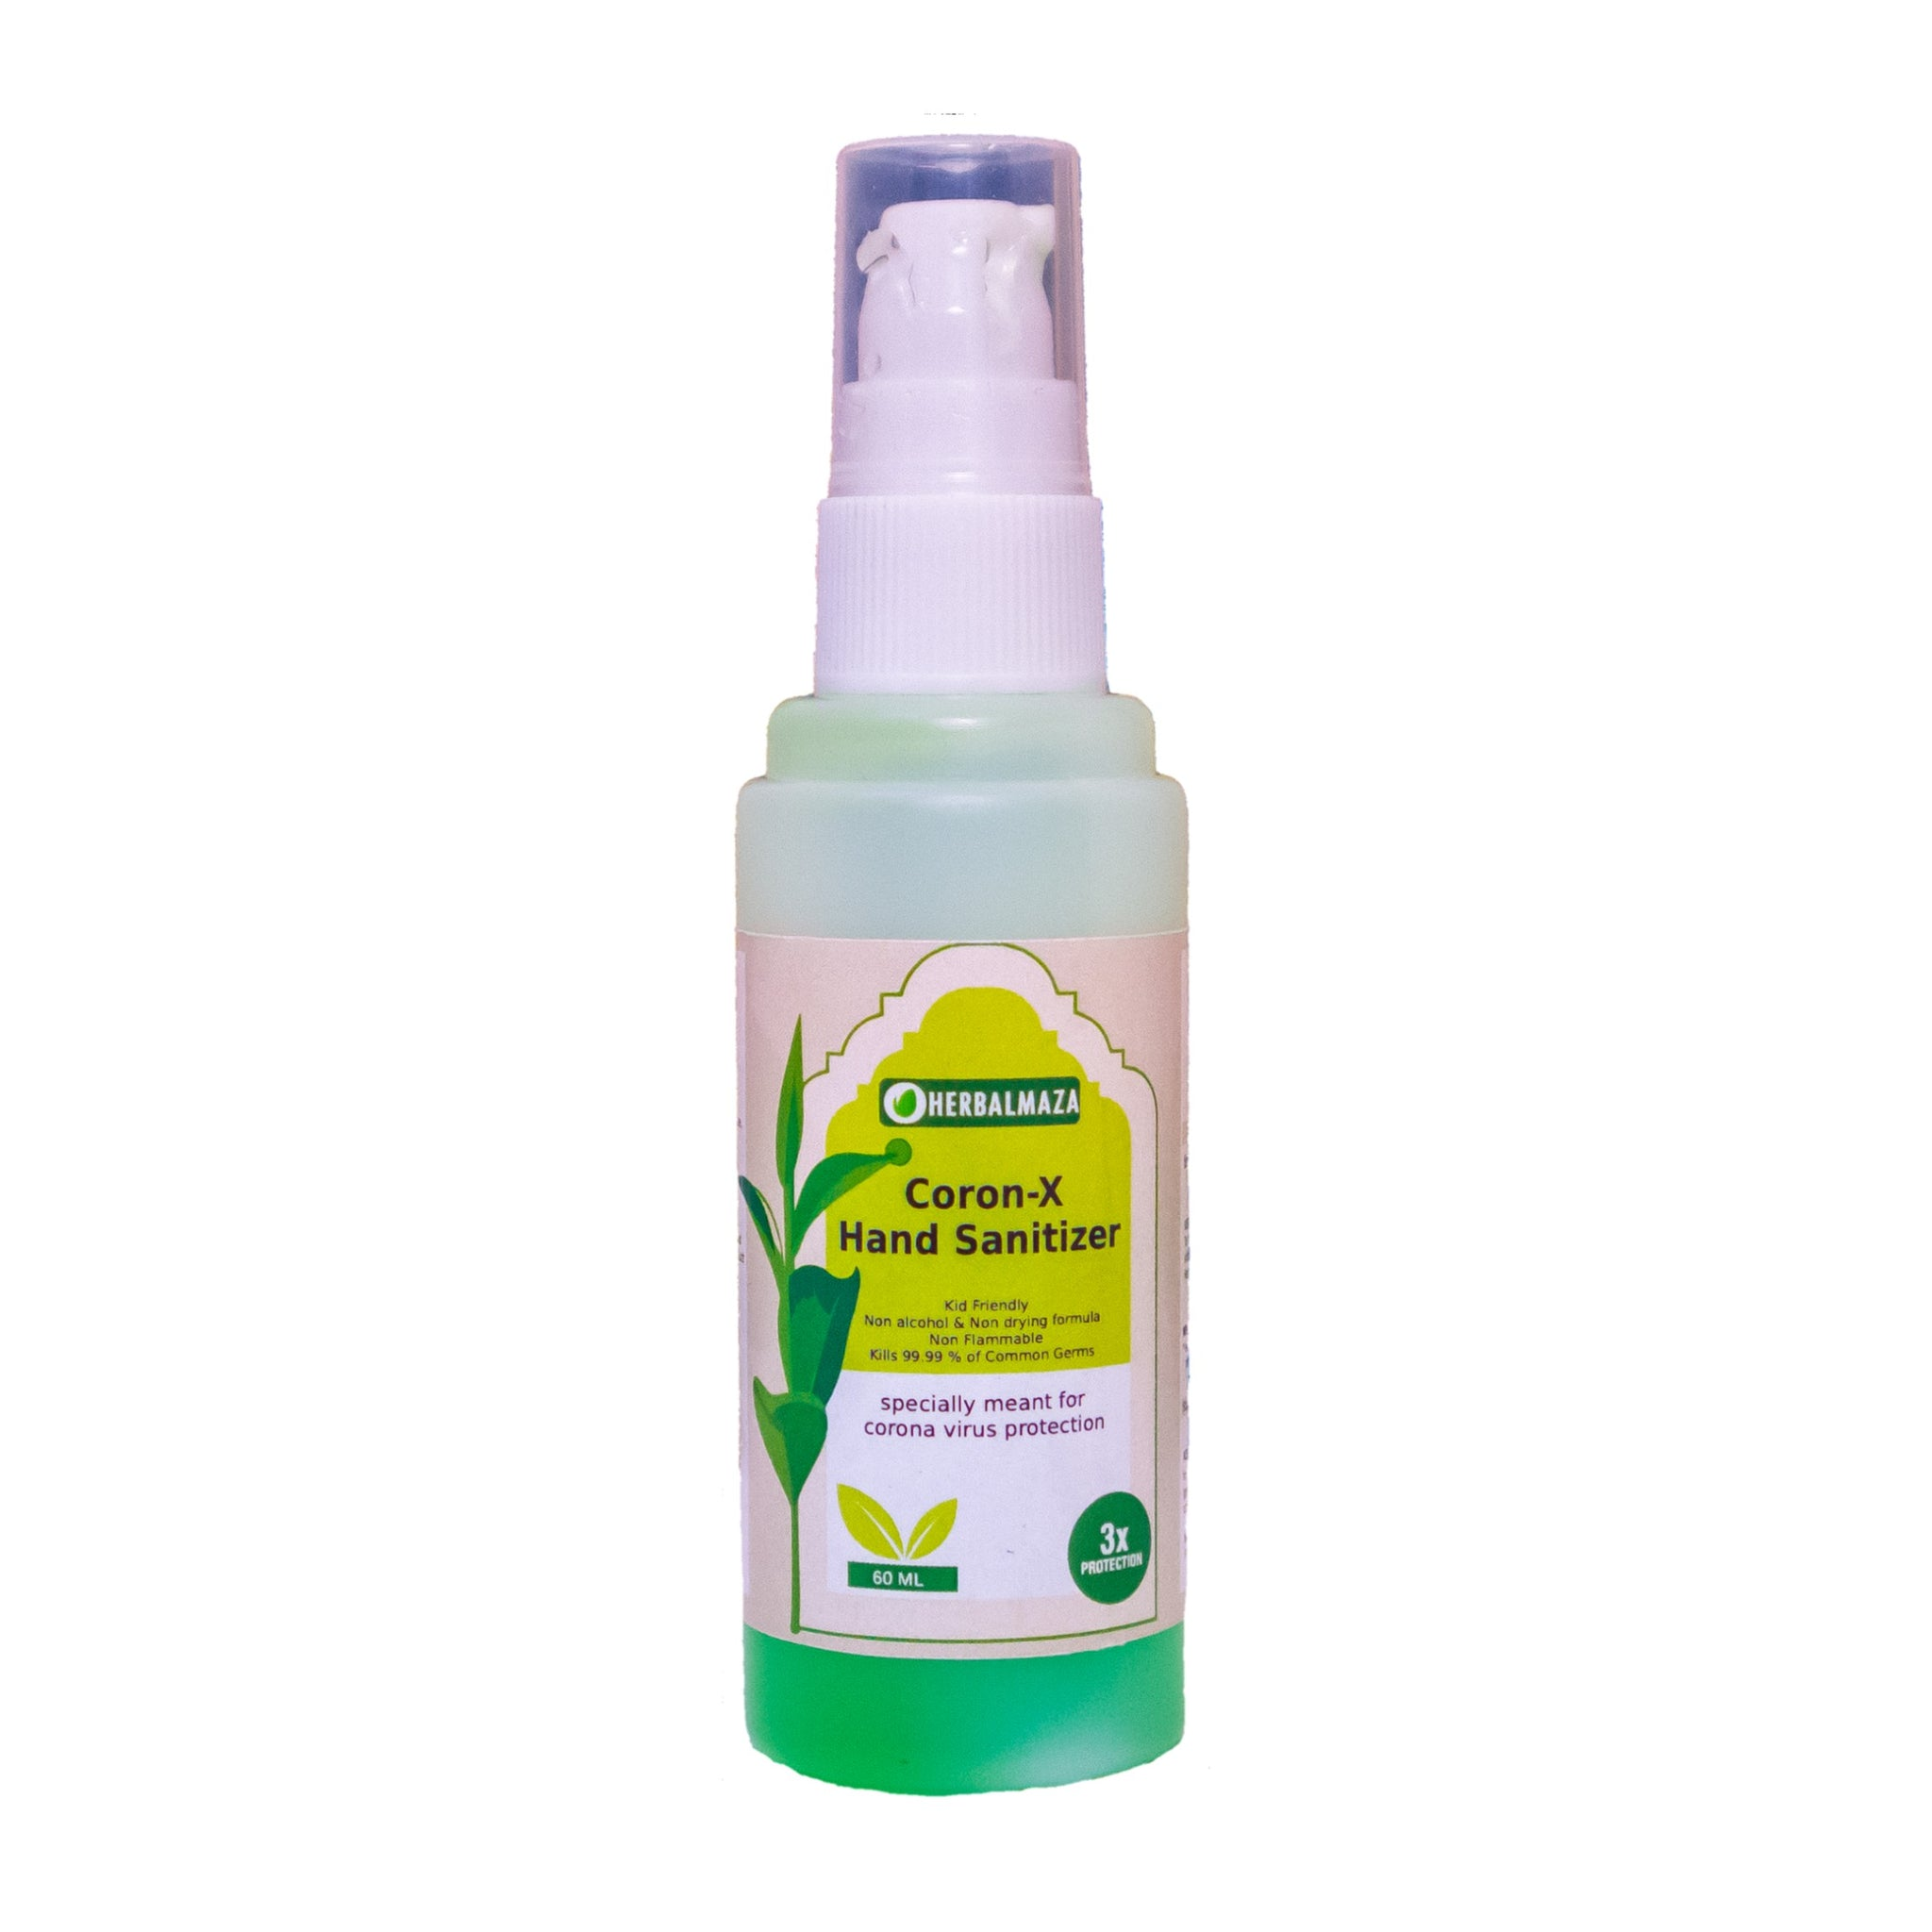 CORON-X Organic SafeHands Hand Sanitizer 60 ml With Vit E, Neem & Aloe Vera Extracts Pack of 3